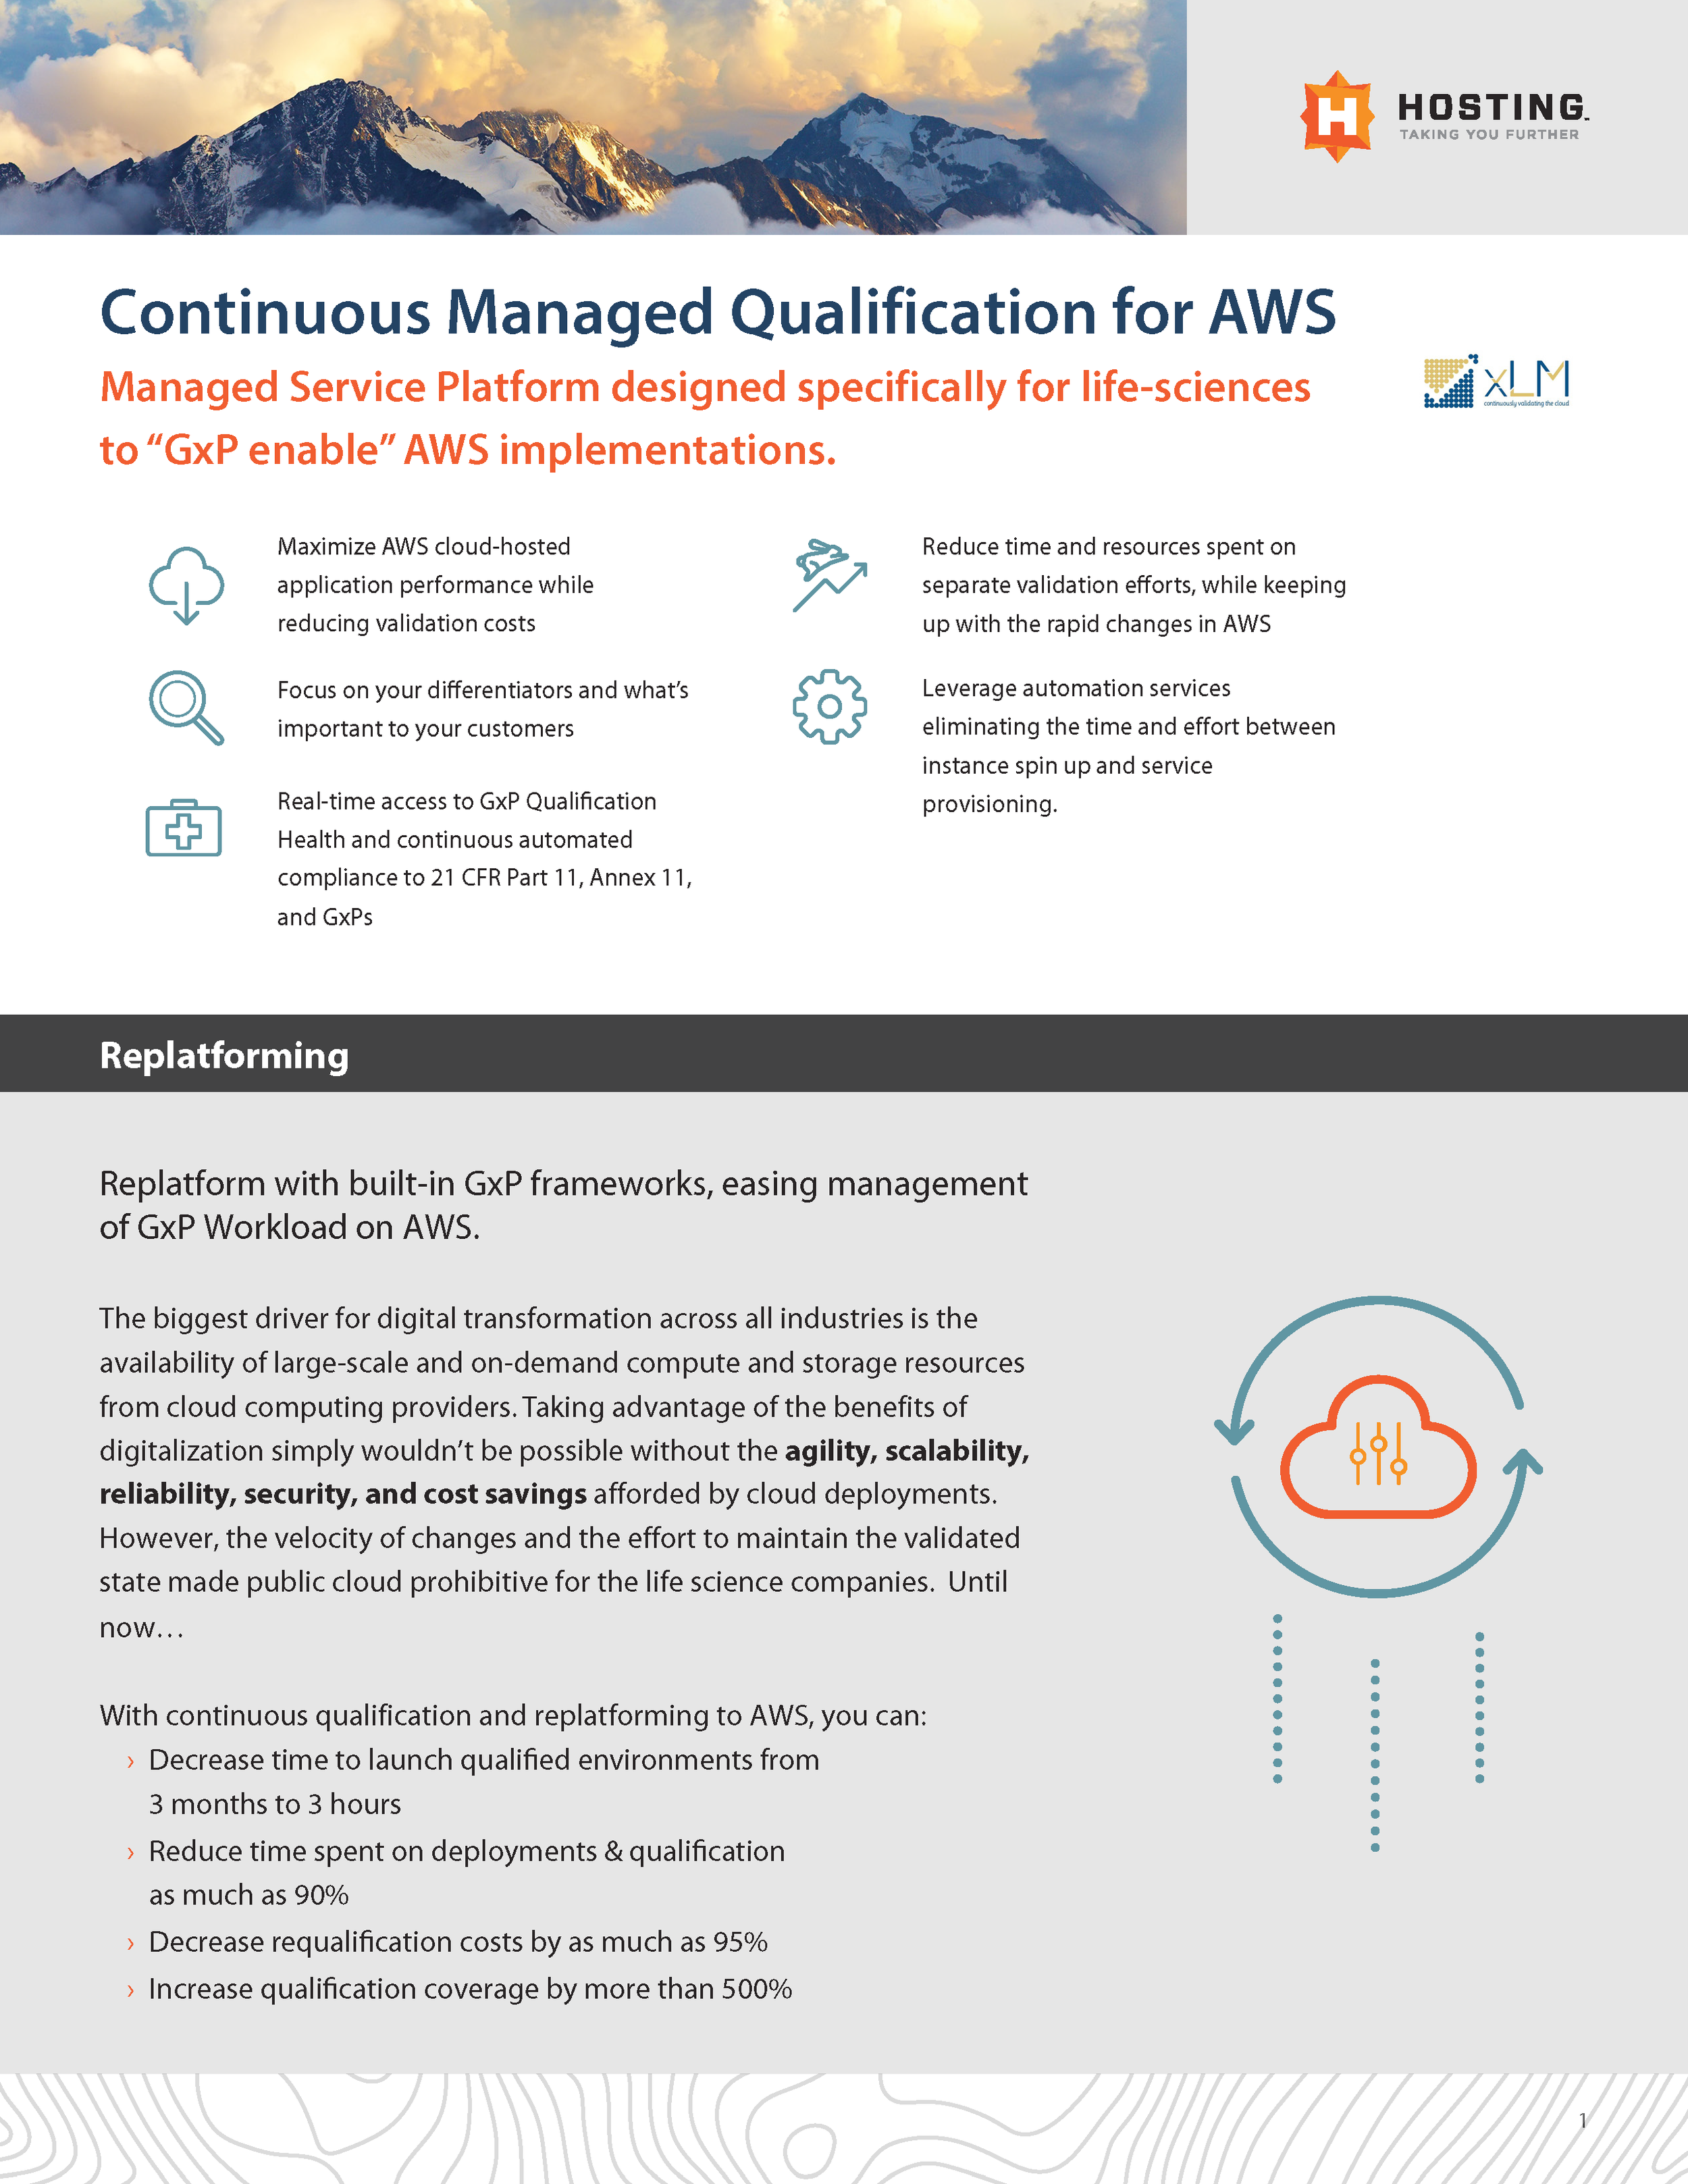 xLM-Hosting_Continuous_Managed_Qualification_for_AWS_Page_1.png